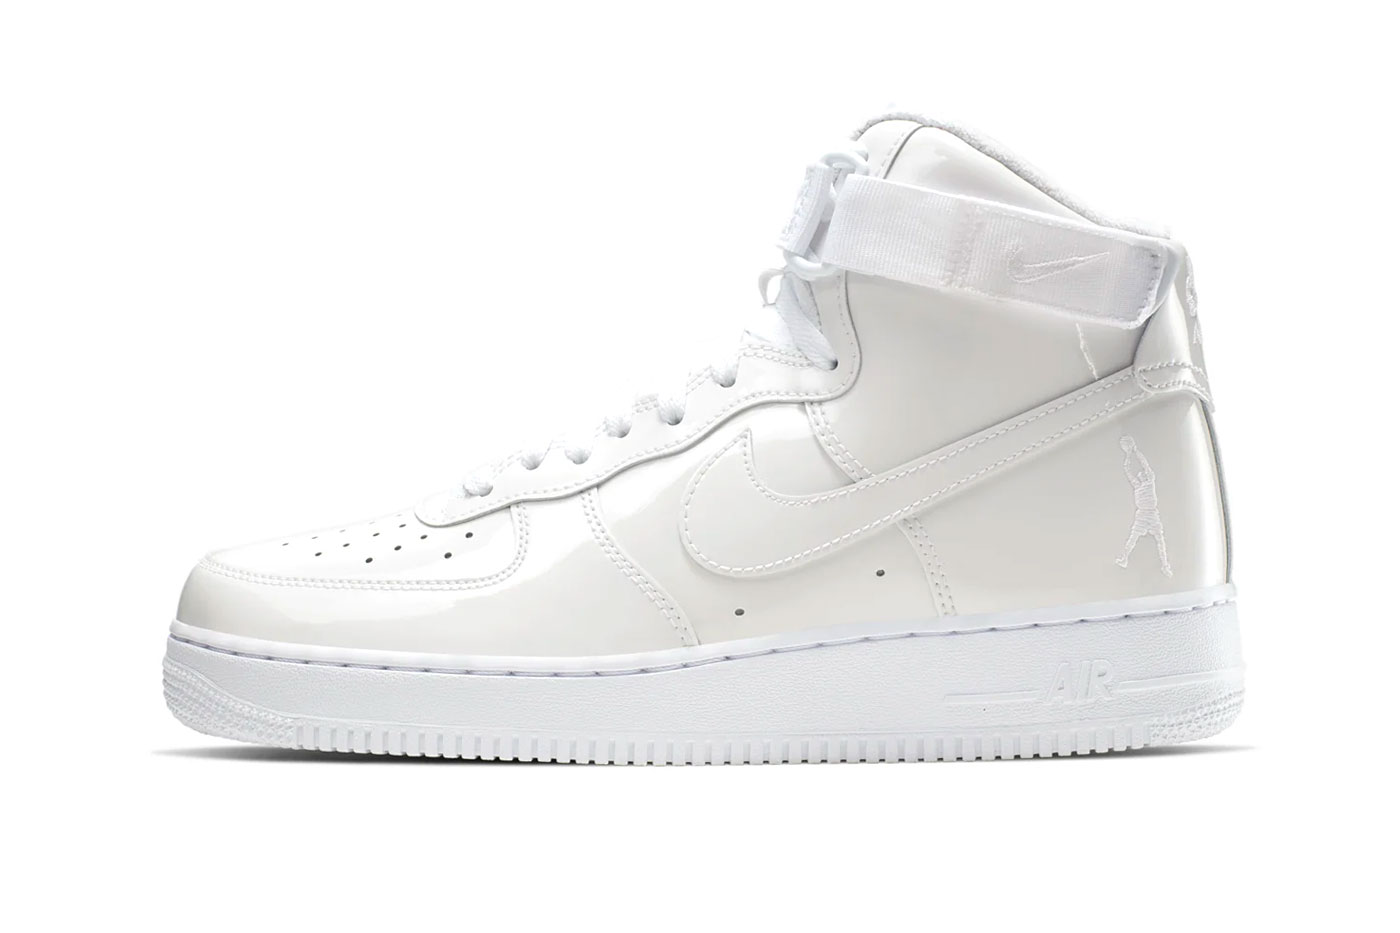 Nike Air Force 1 High Sheed Release Info 743546-107